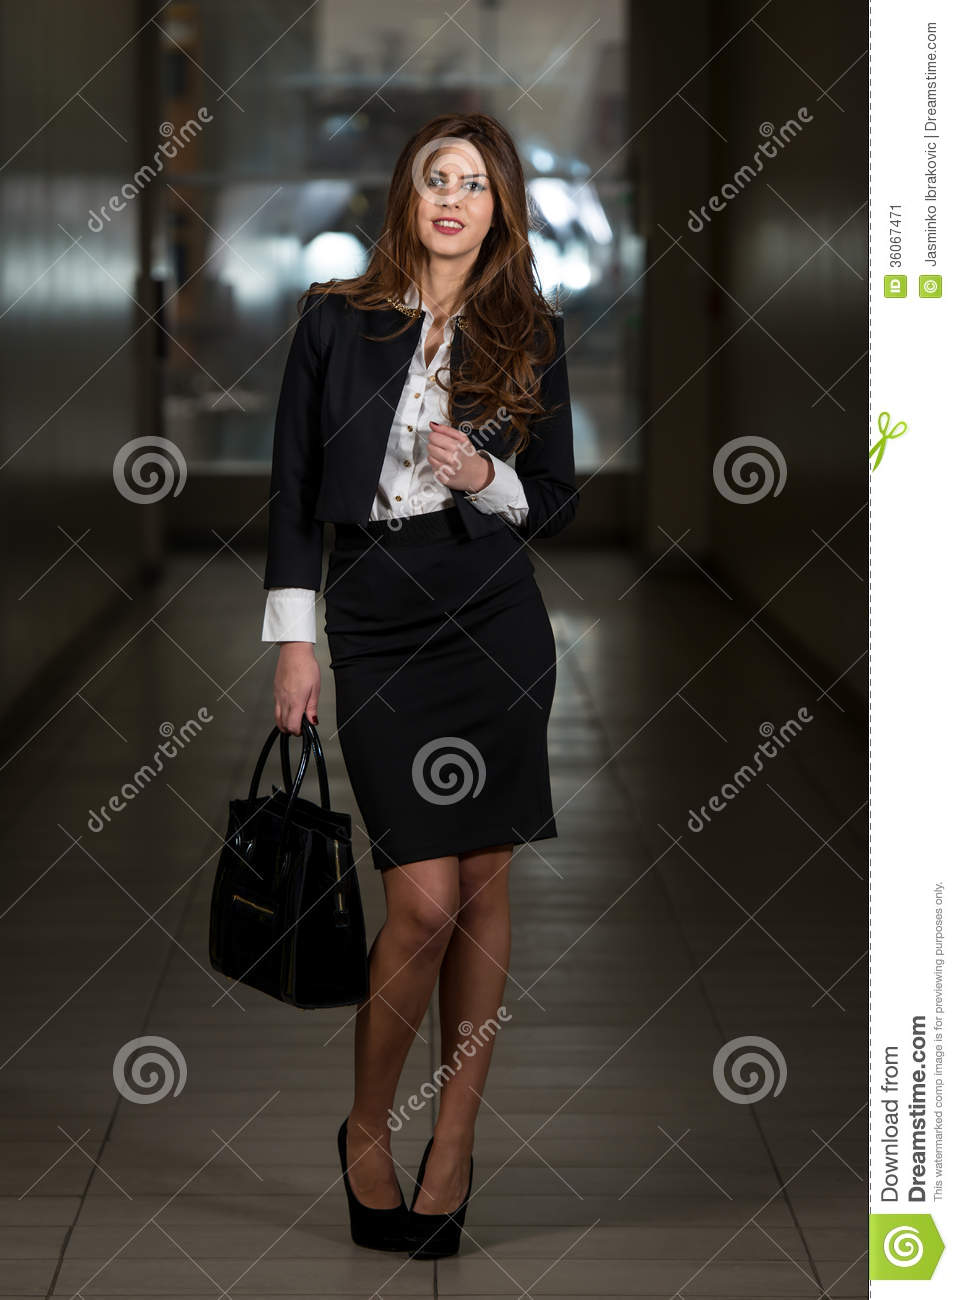 Business Woman In Suit At The Shopping Mall Stock Image Image 36067471